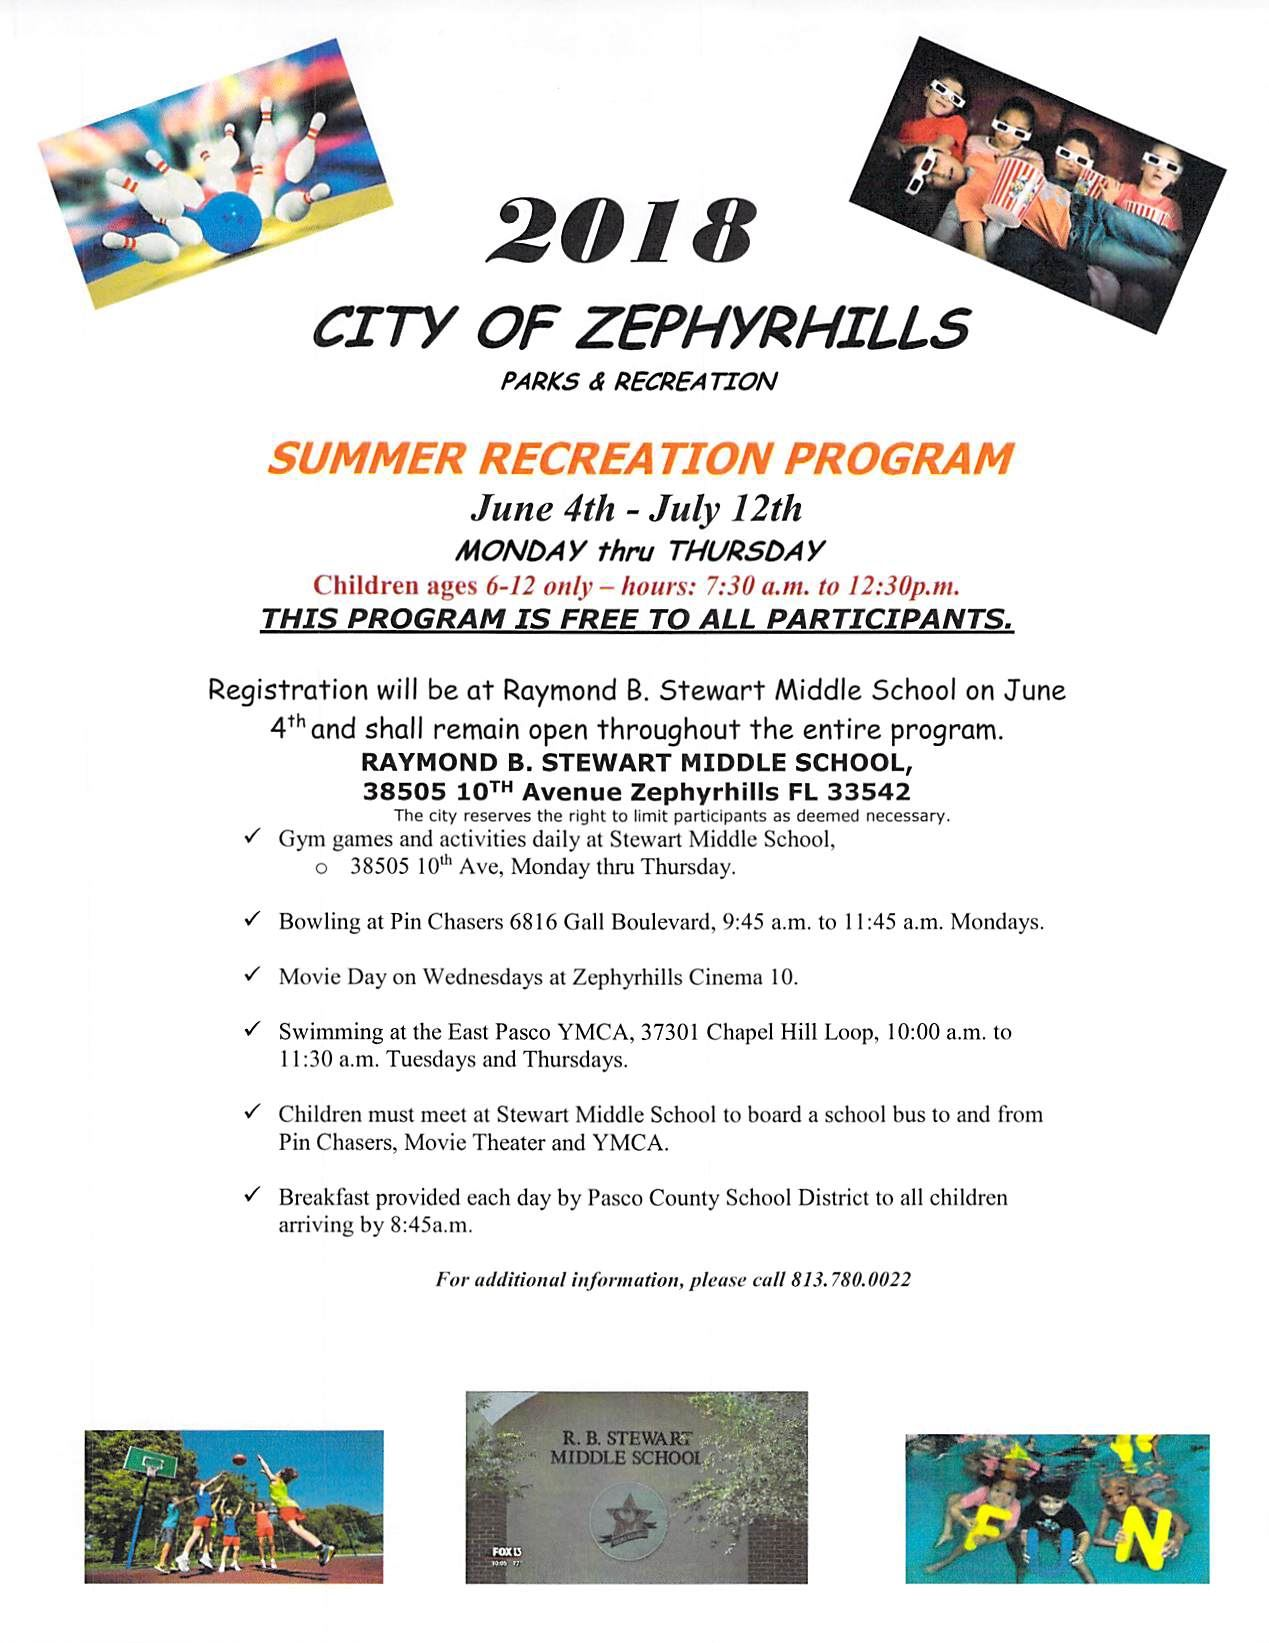 Summer Recreation Program 2018